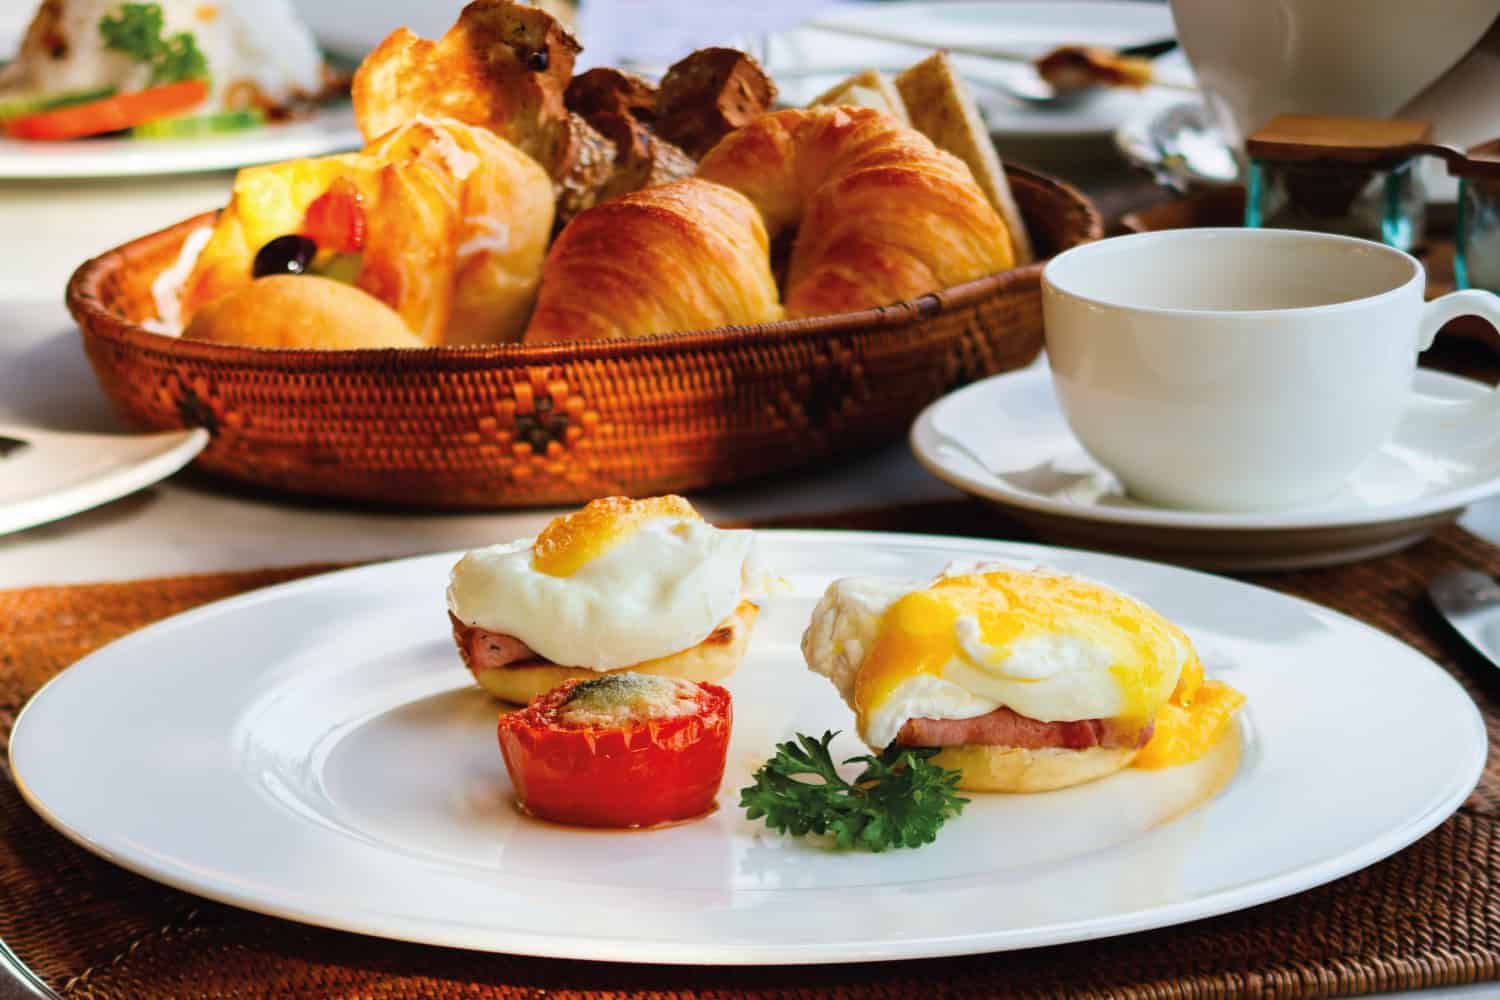 Delicious breakfast with poached eggs